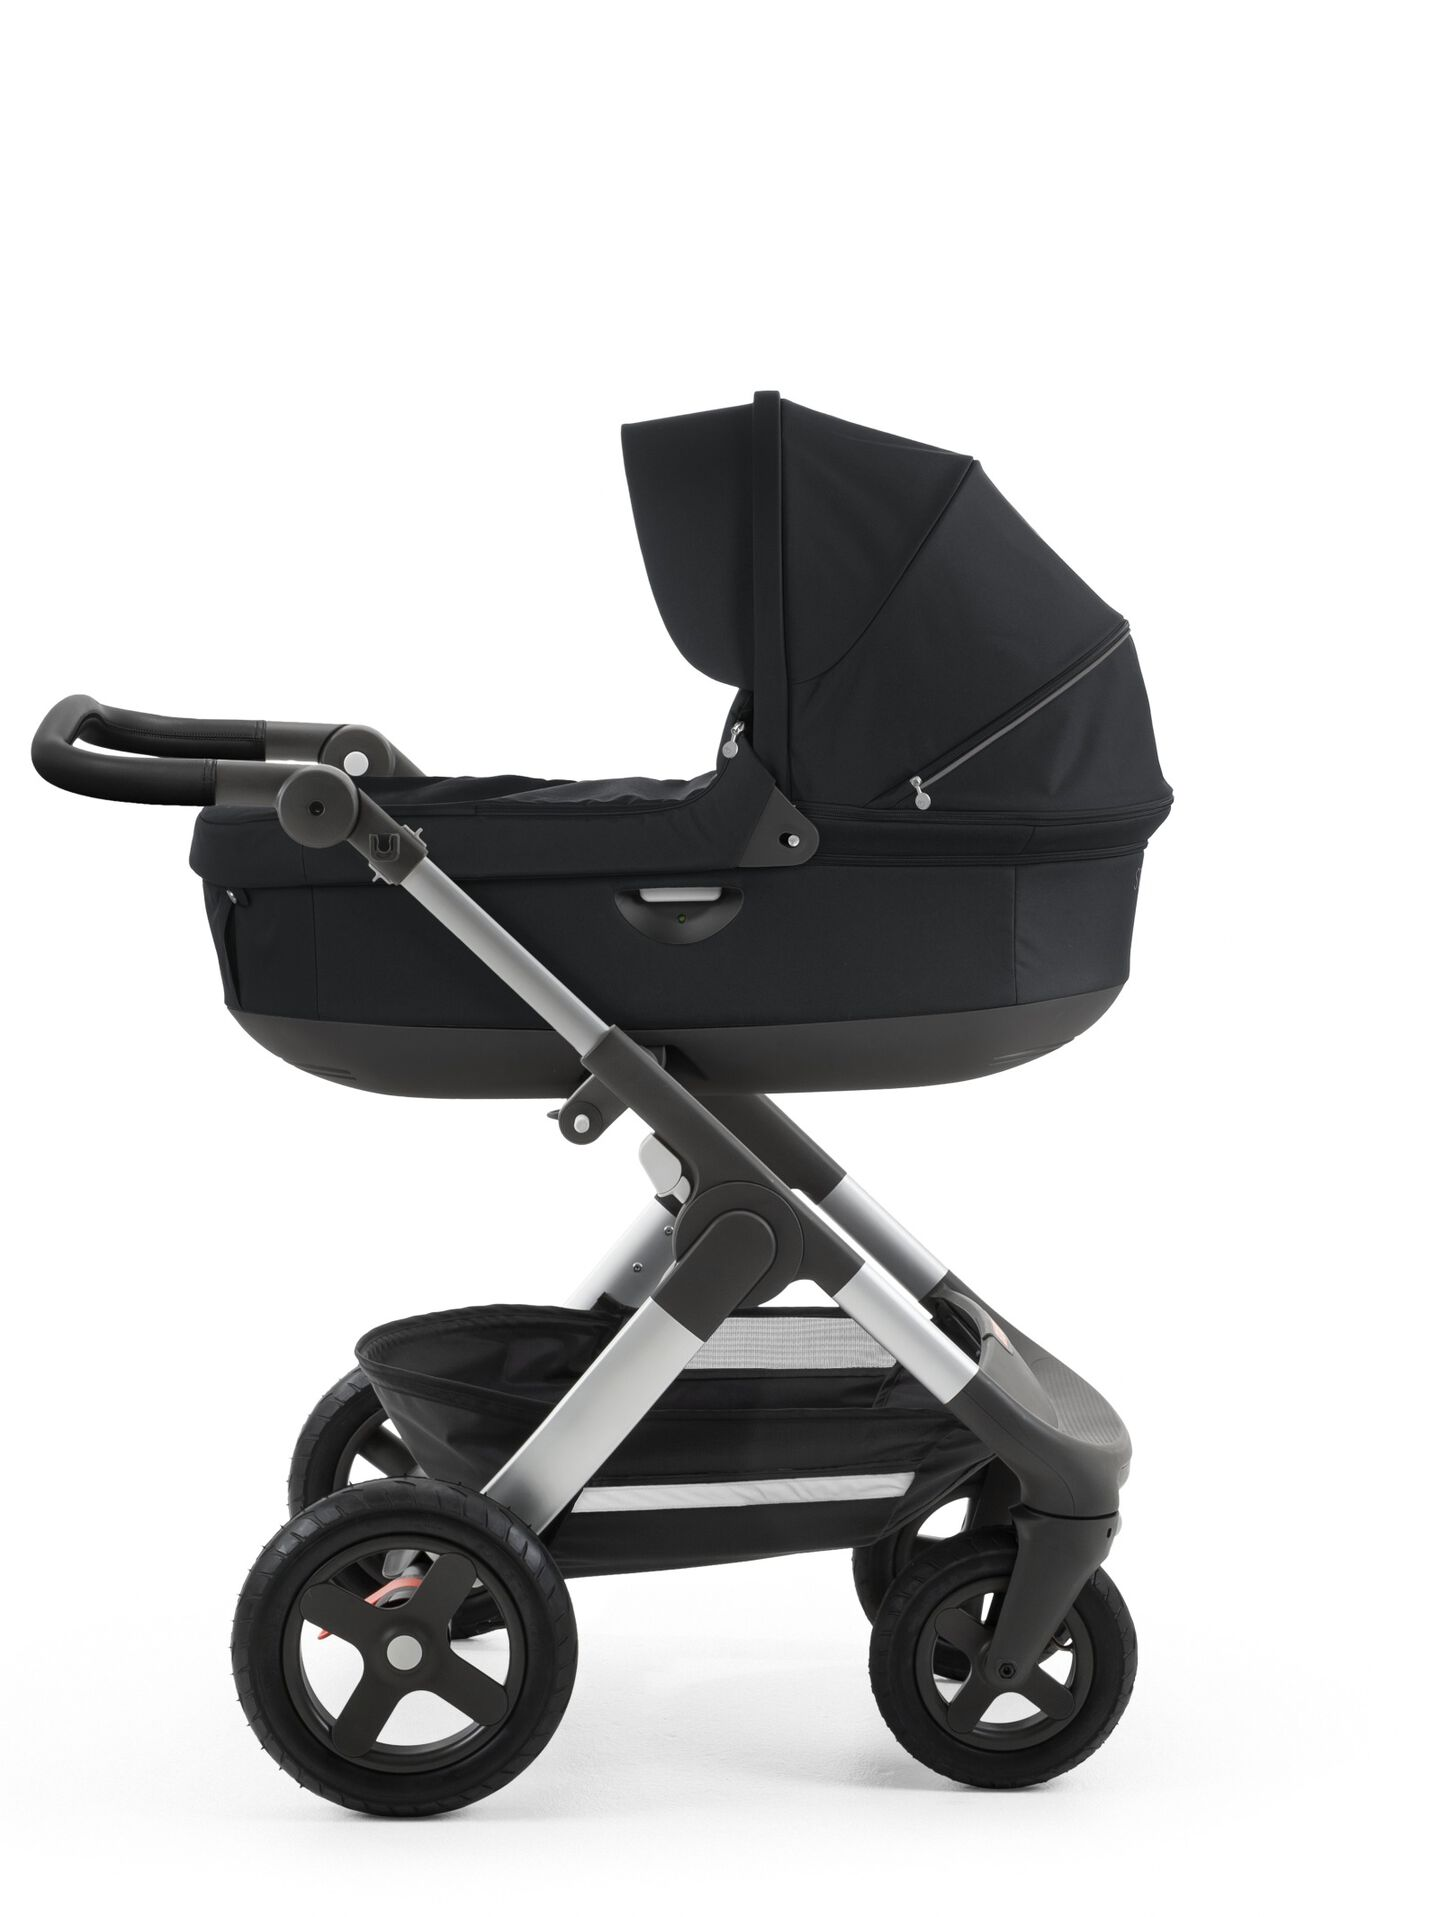 Stokke® Trailz™ with silver chassis  and Stokke® Stroller Carry Cot, Black. Leatherette Handle.